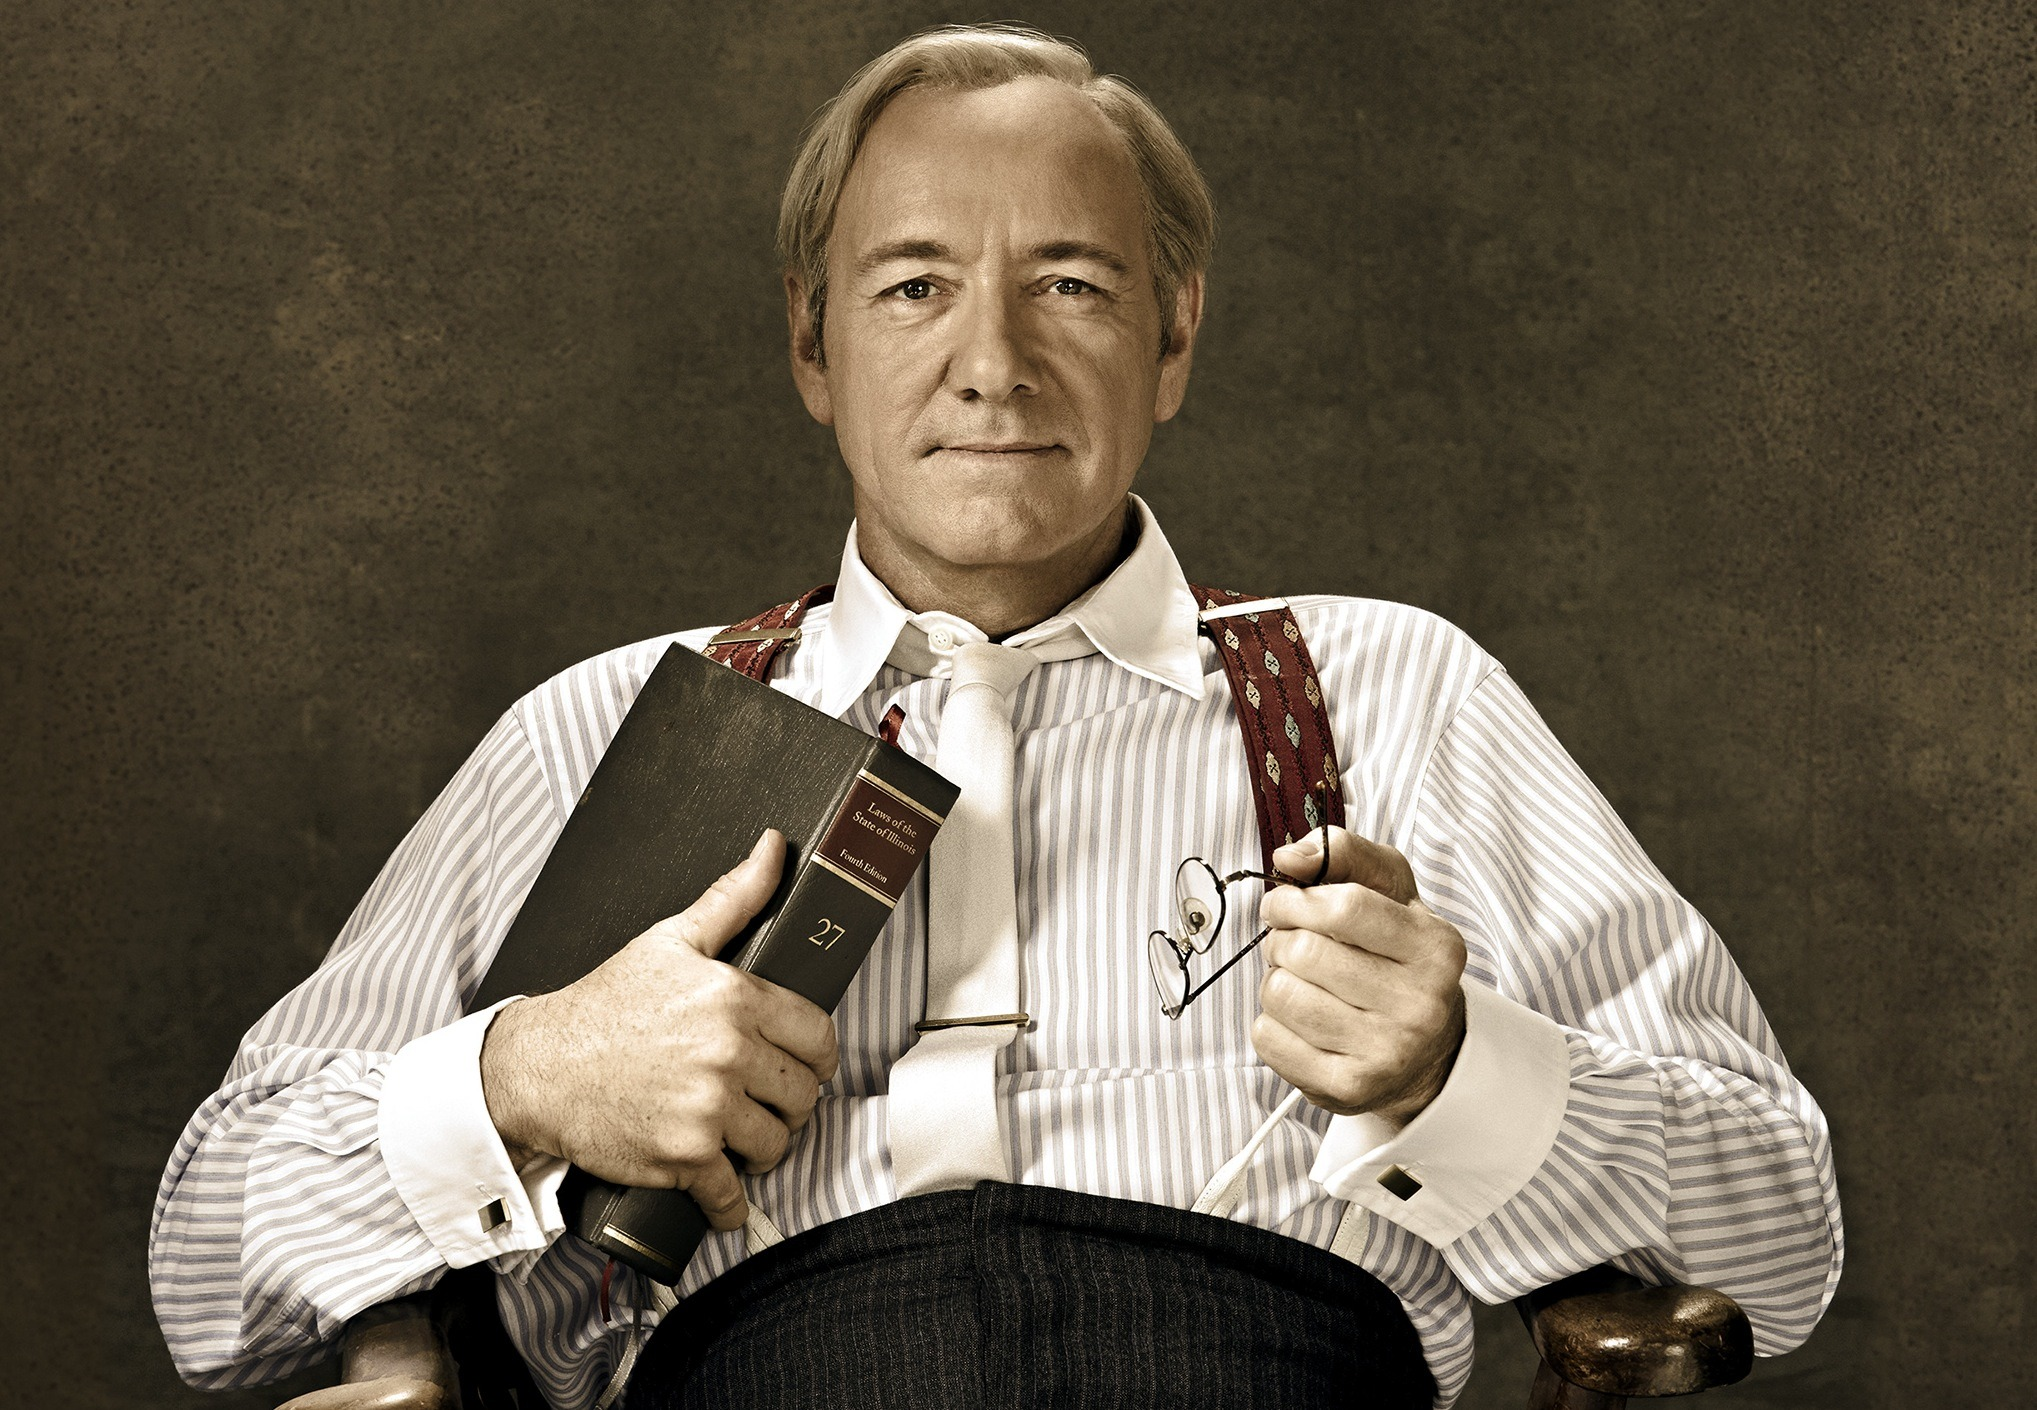 Kevin Spacey as Clarence Darrow